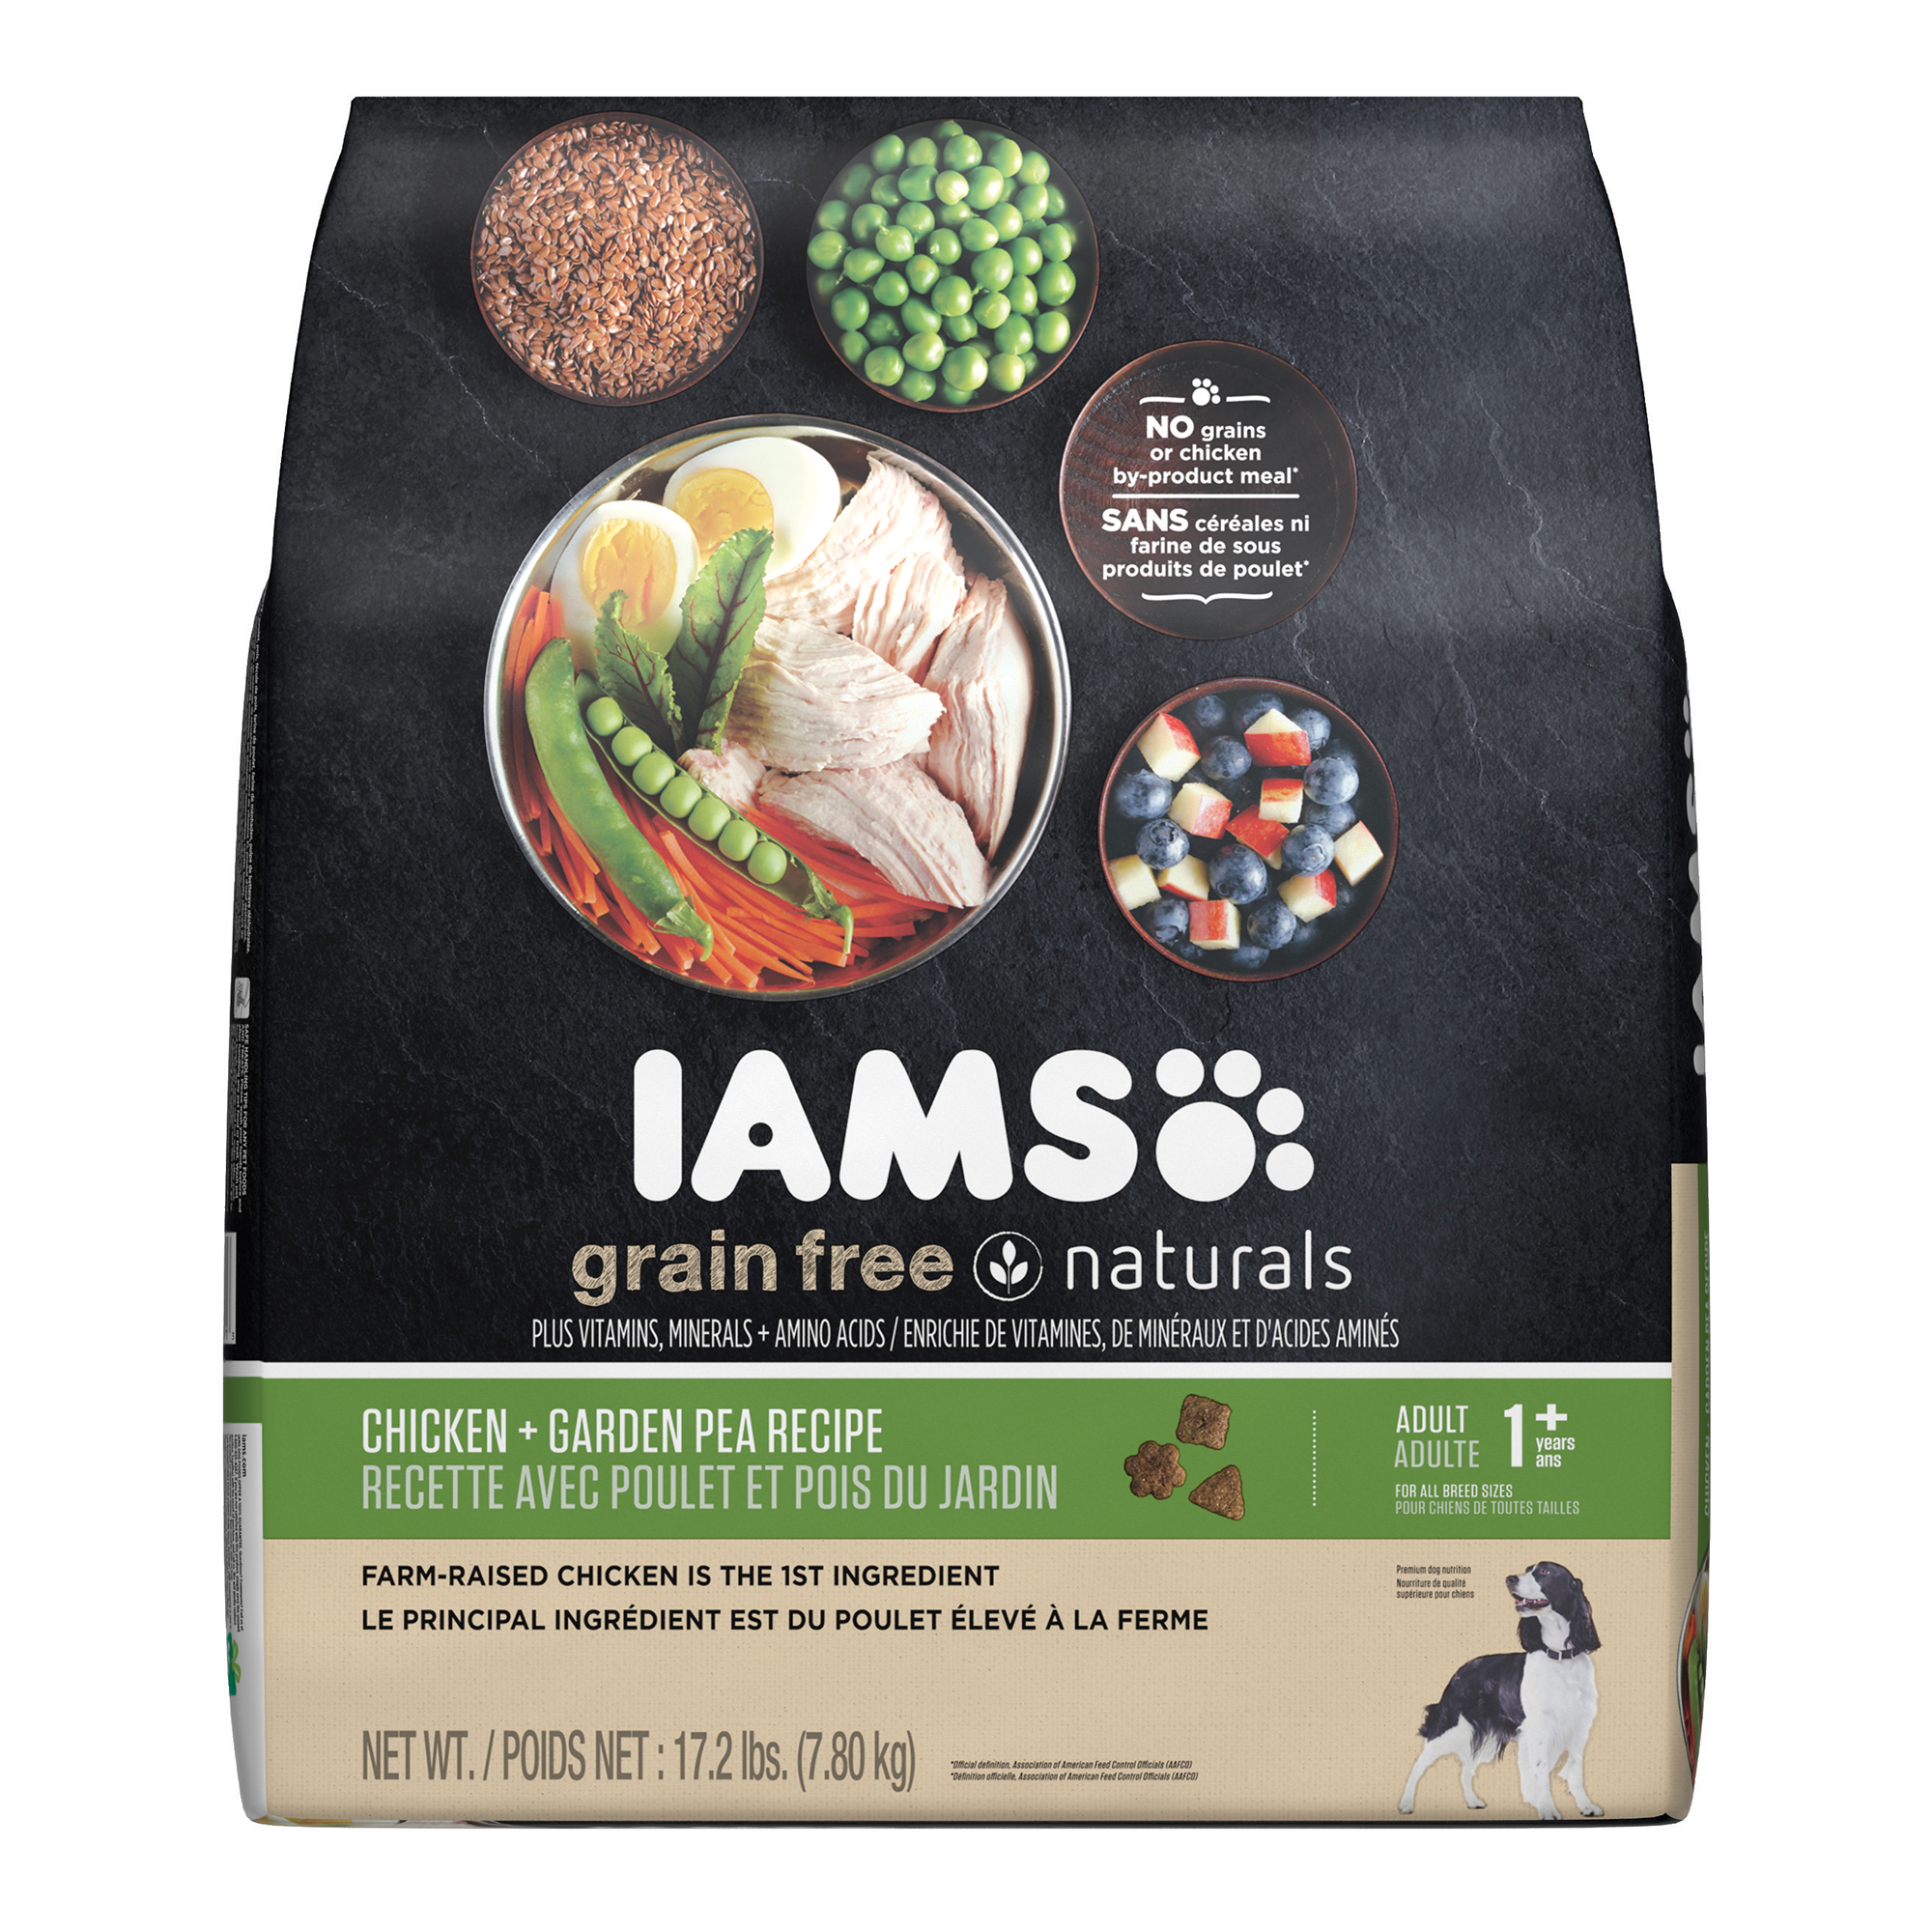 IAMS GRAIN FREE NATURALS Adult Dog Chicken and Garden Pea Recipe Dry Dog Food 17.2 Pounds